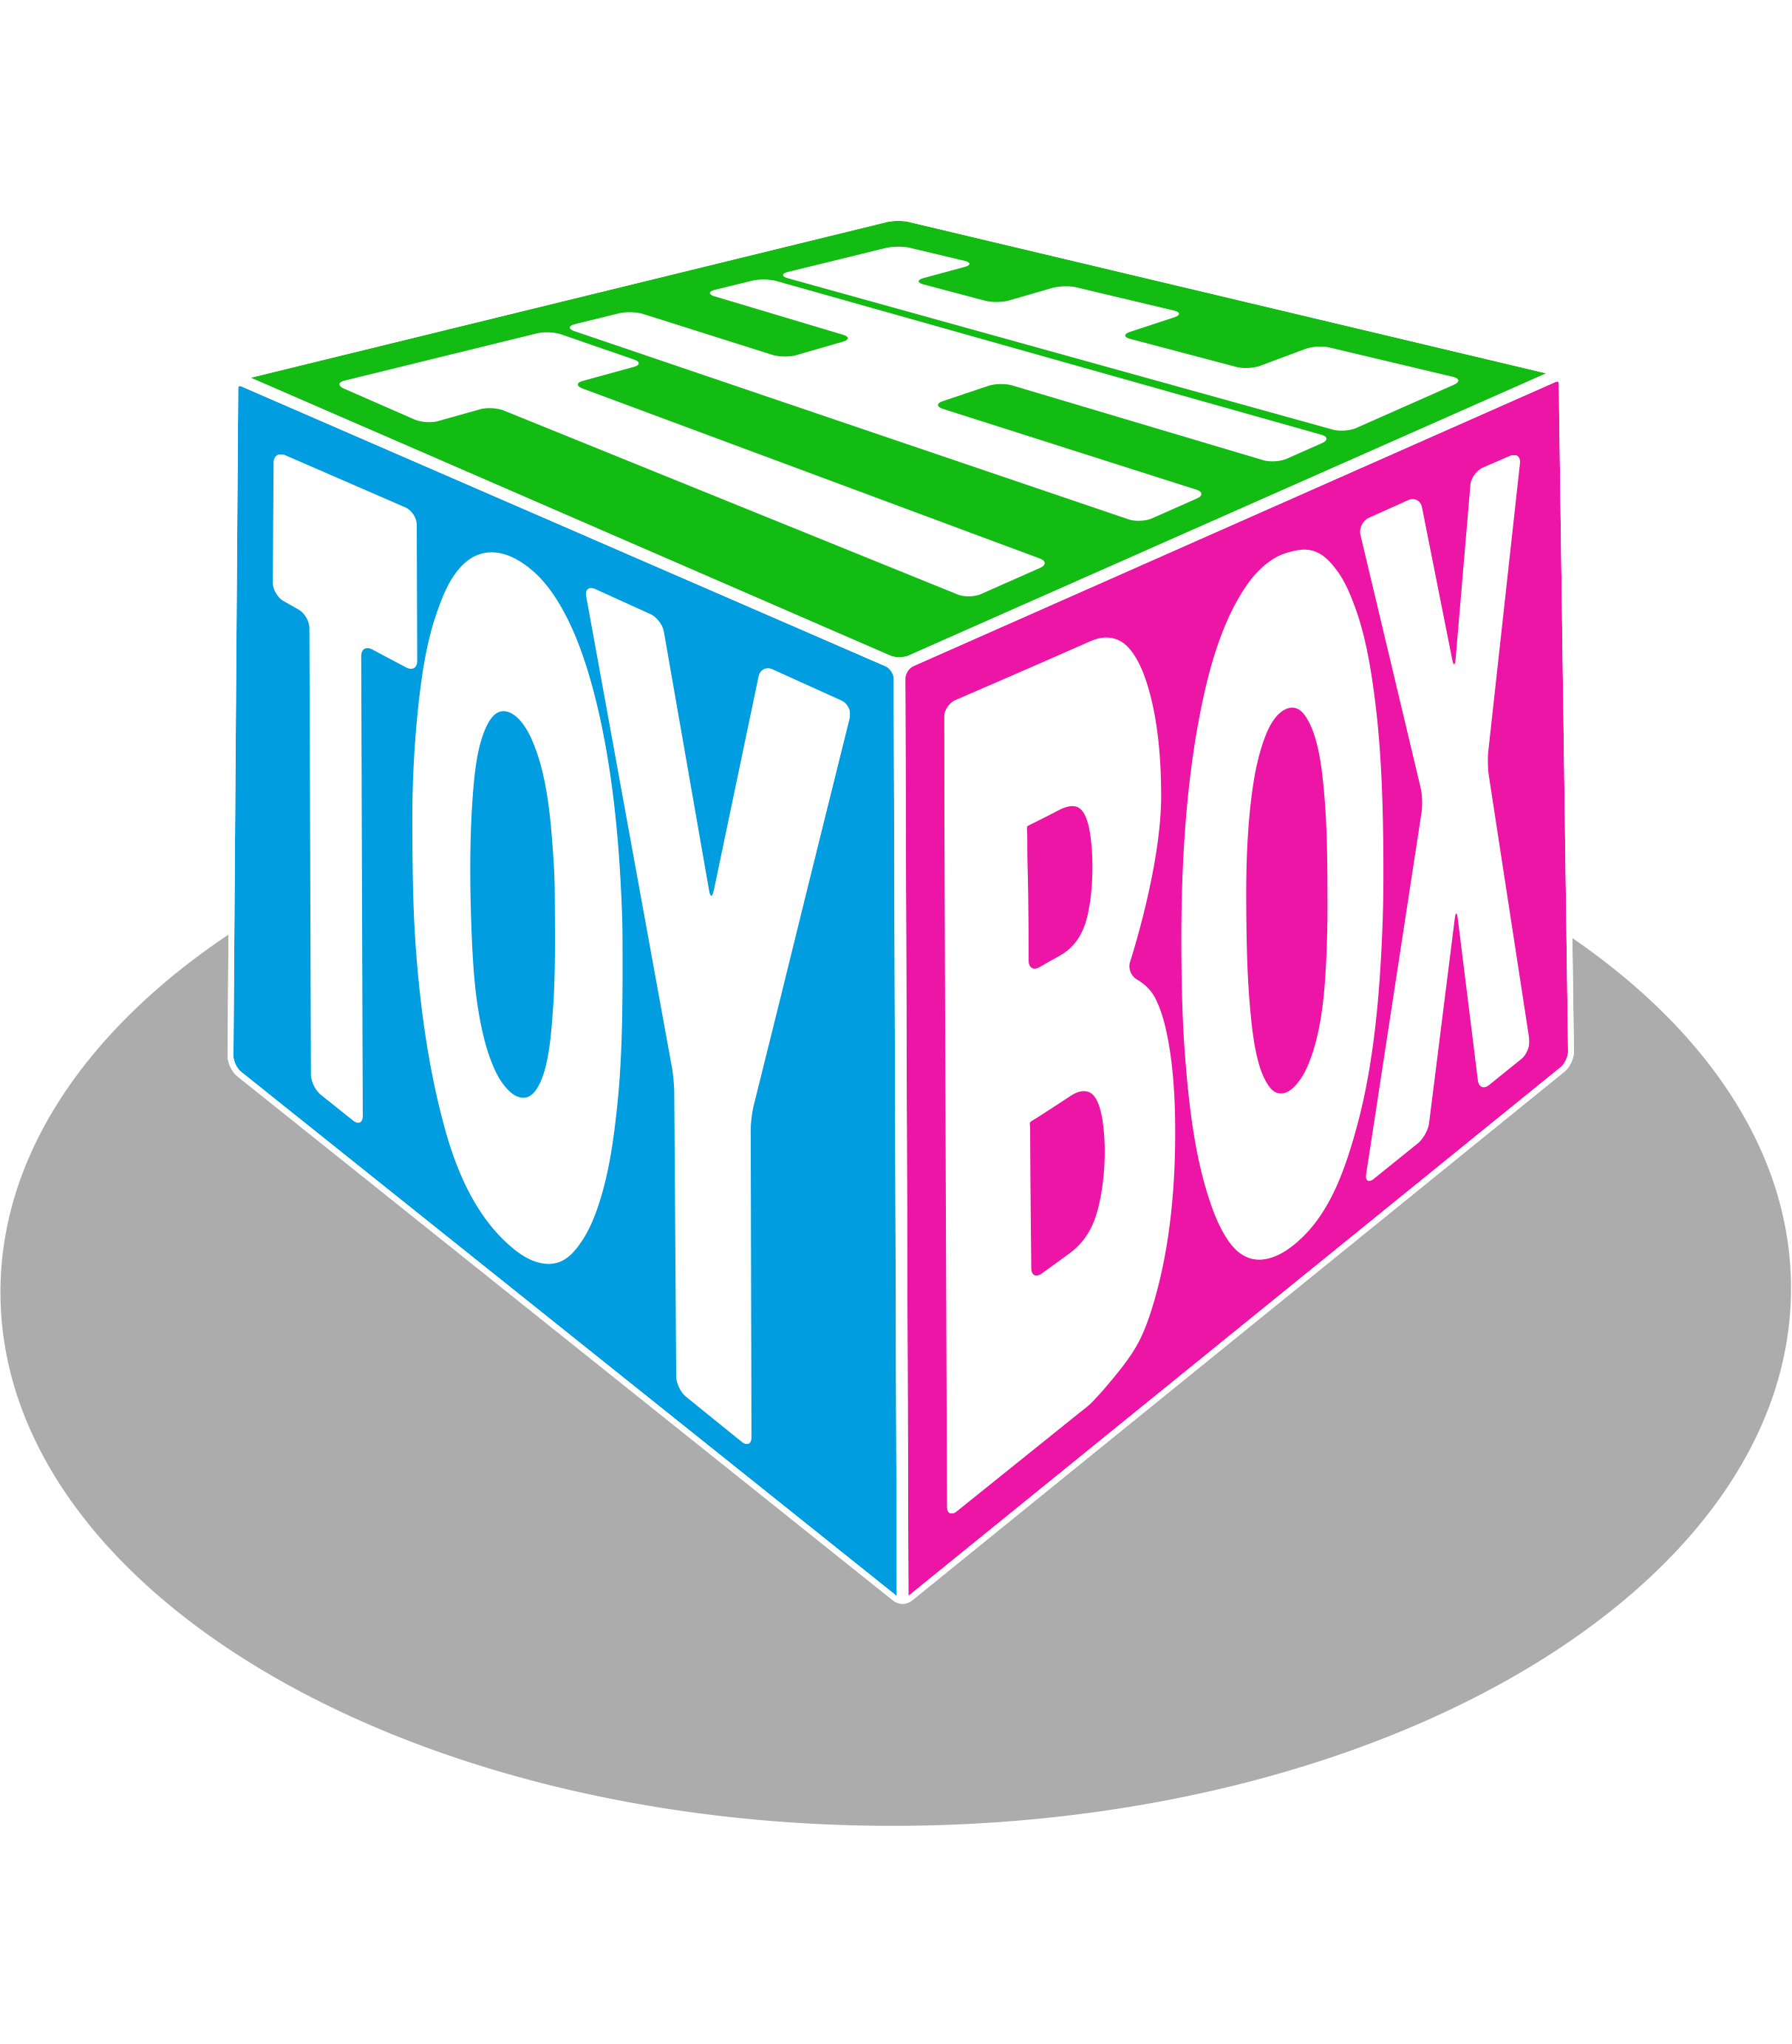 The Toy Shop Logo